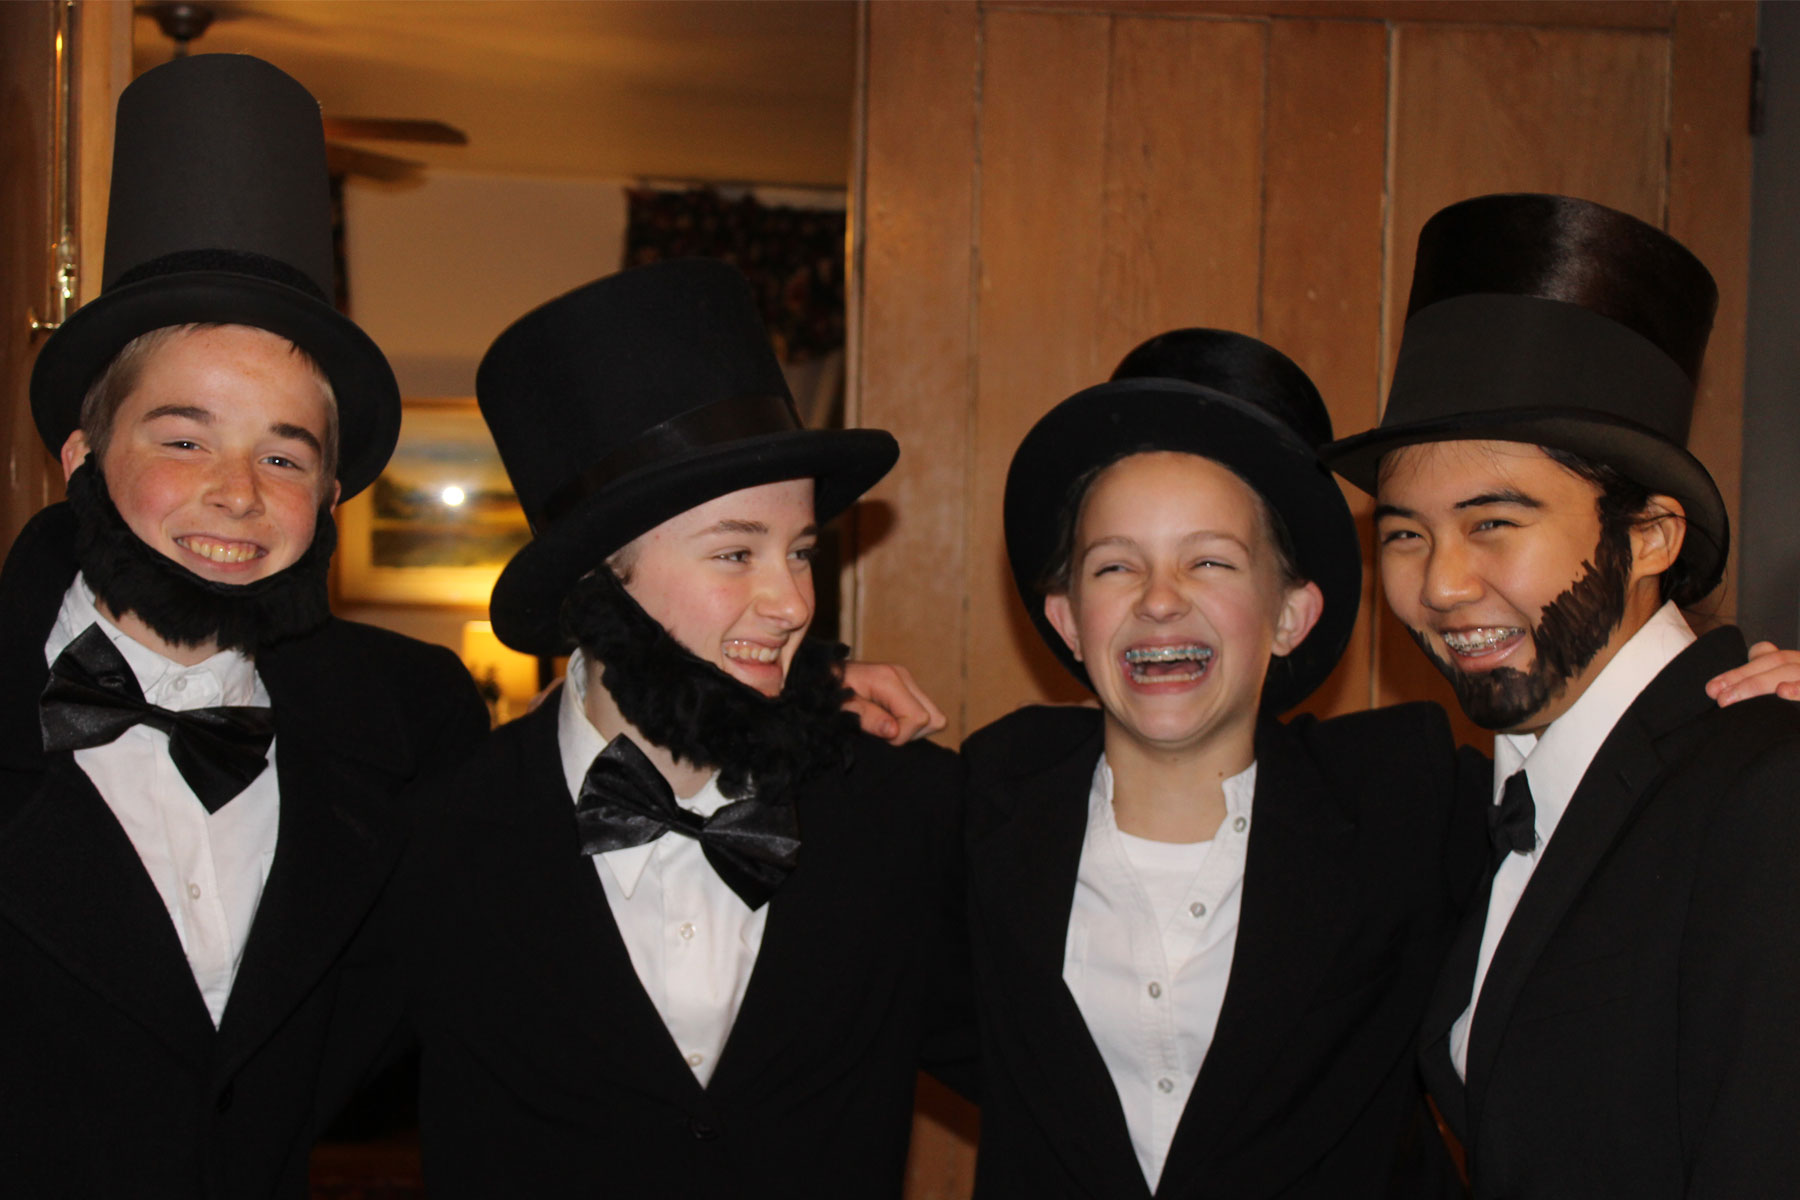 group-dressed-as-lincoln-2